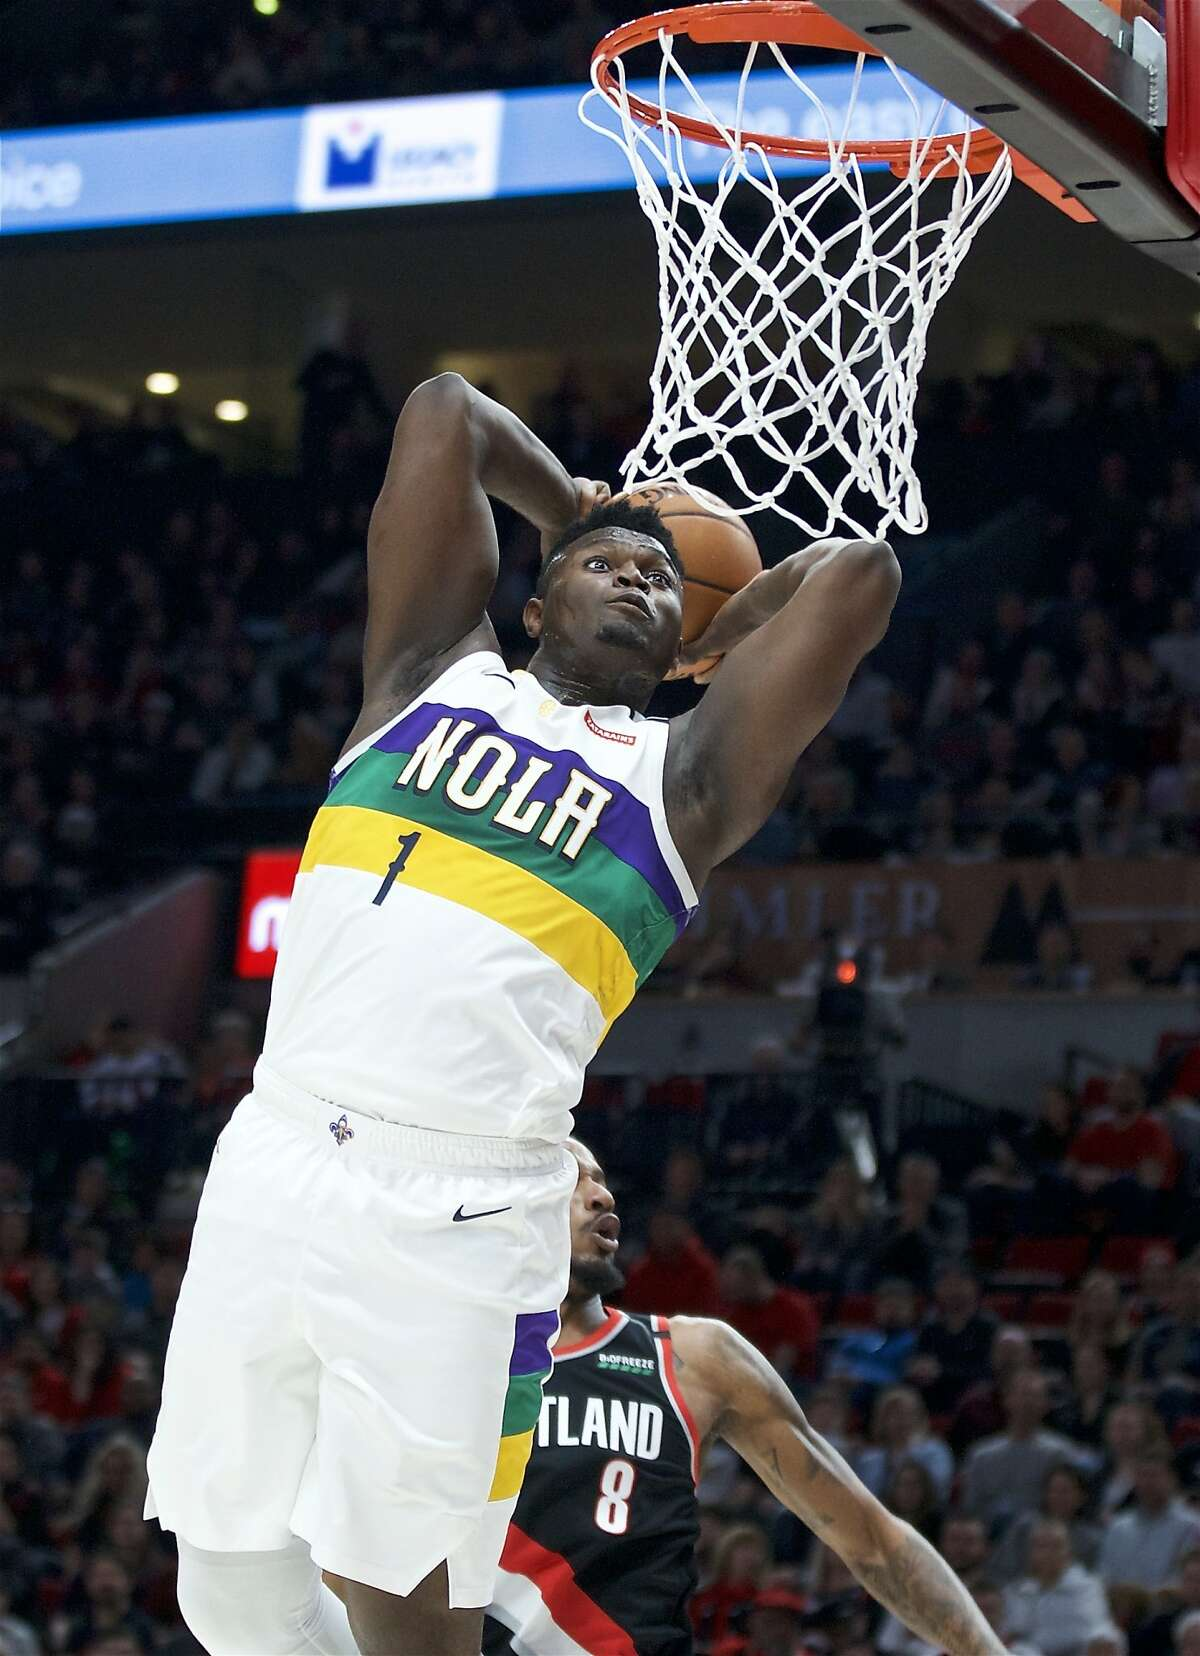 New Orleans Pelicans forward Zion Williamson goes up for a dunk in front of Portland Trail Blazers forward Trevor Ariza during the first half of an NBA basketball game in Portland, Ore., Friday, Feb. 21, 2020. (AP Photo/Craig Mitchelldyer)